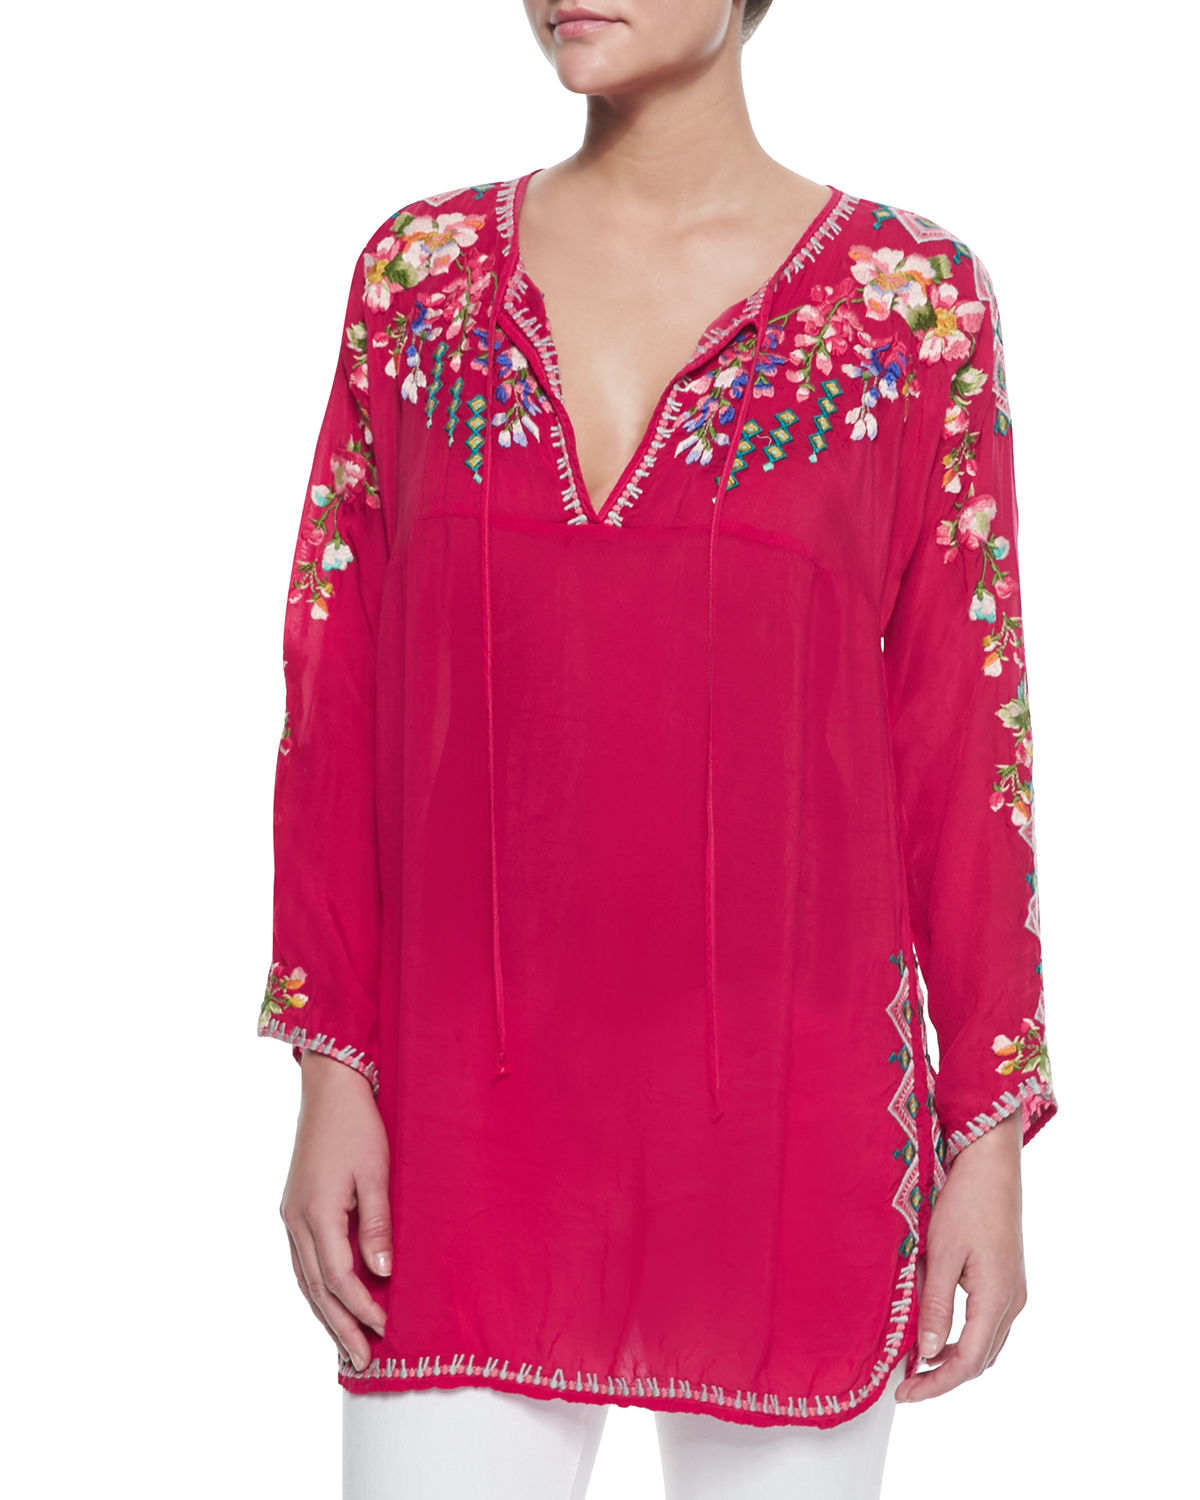 Neiman Marcus Pink Home Decor Ebth: Johnny Was Petite Vanessa Georgette Embroidered Tunic